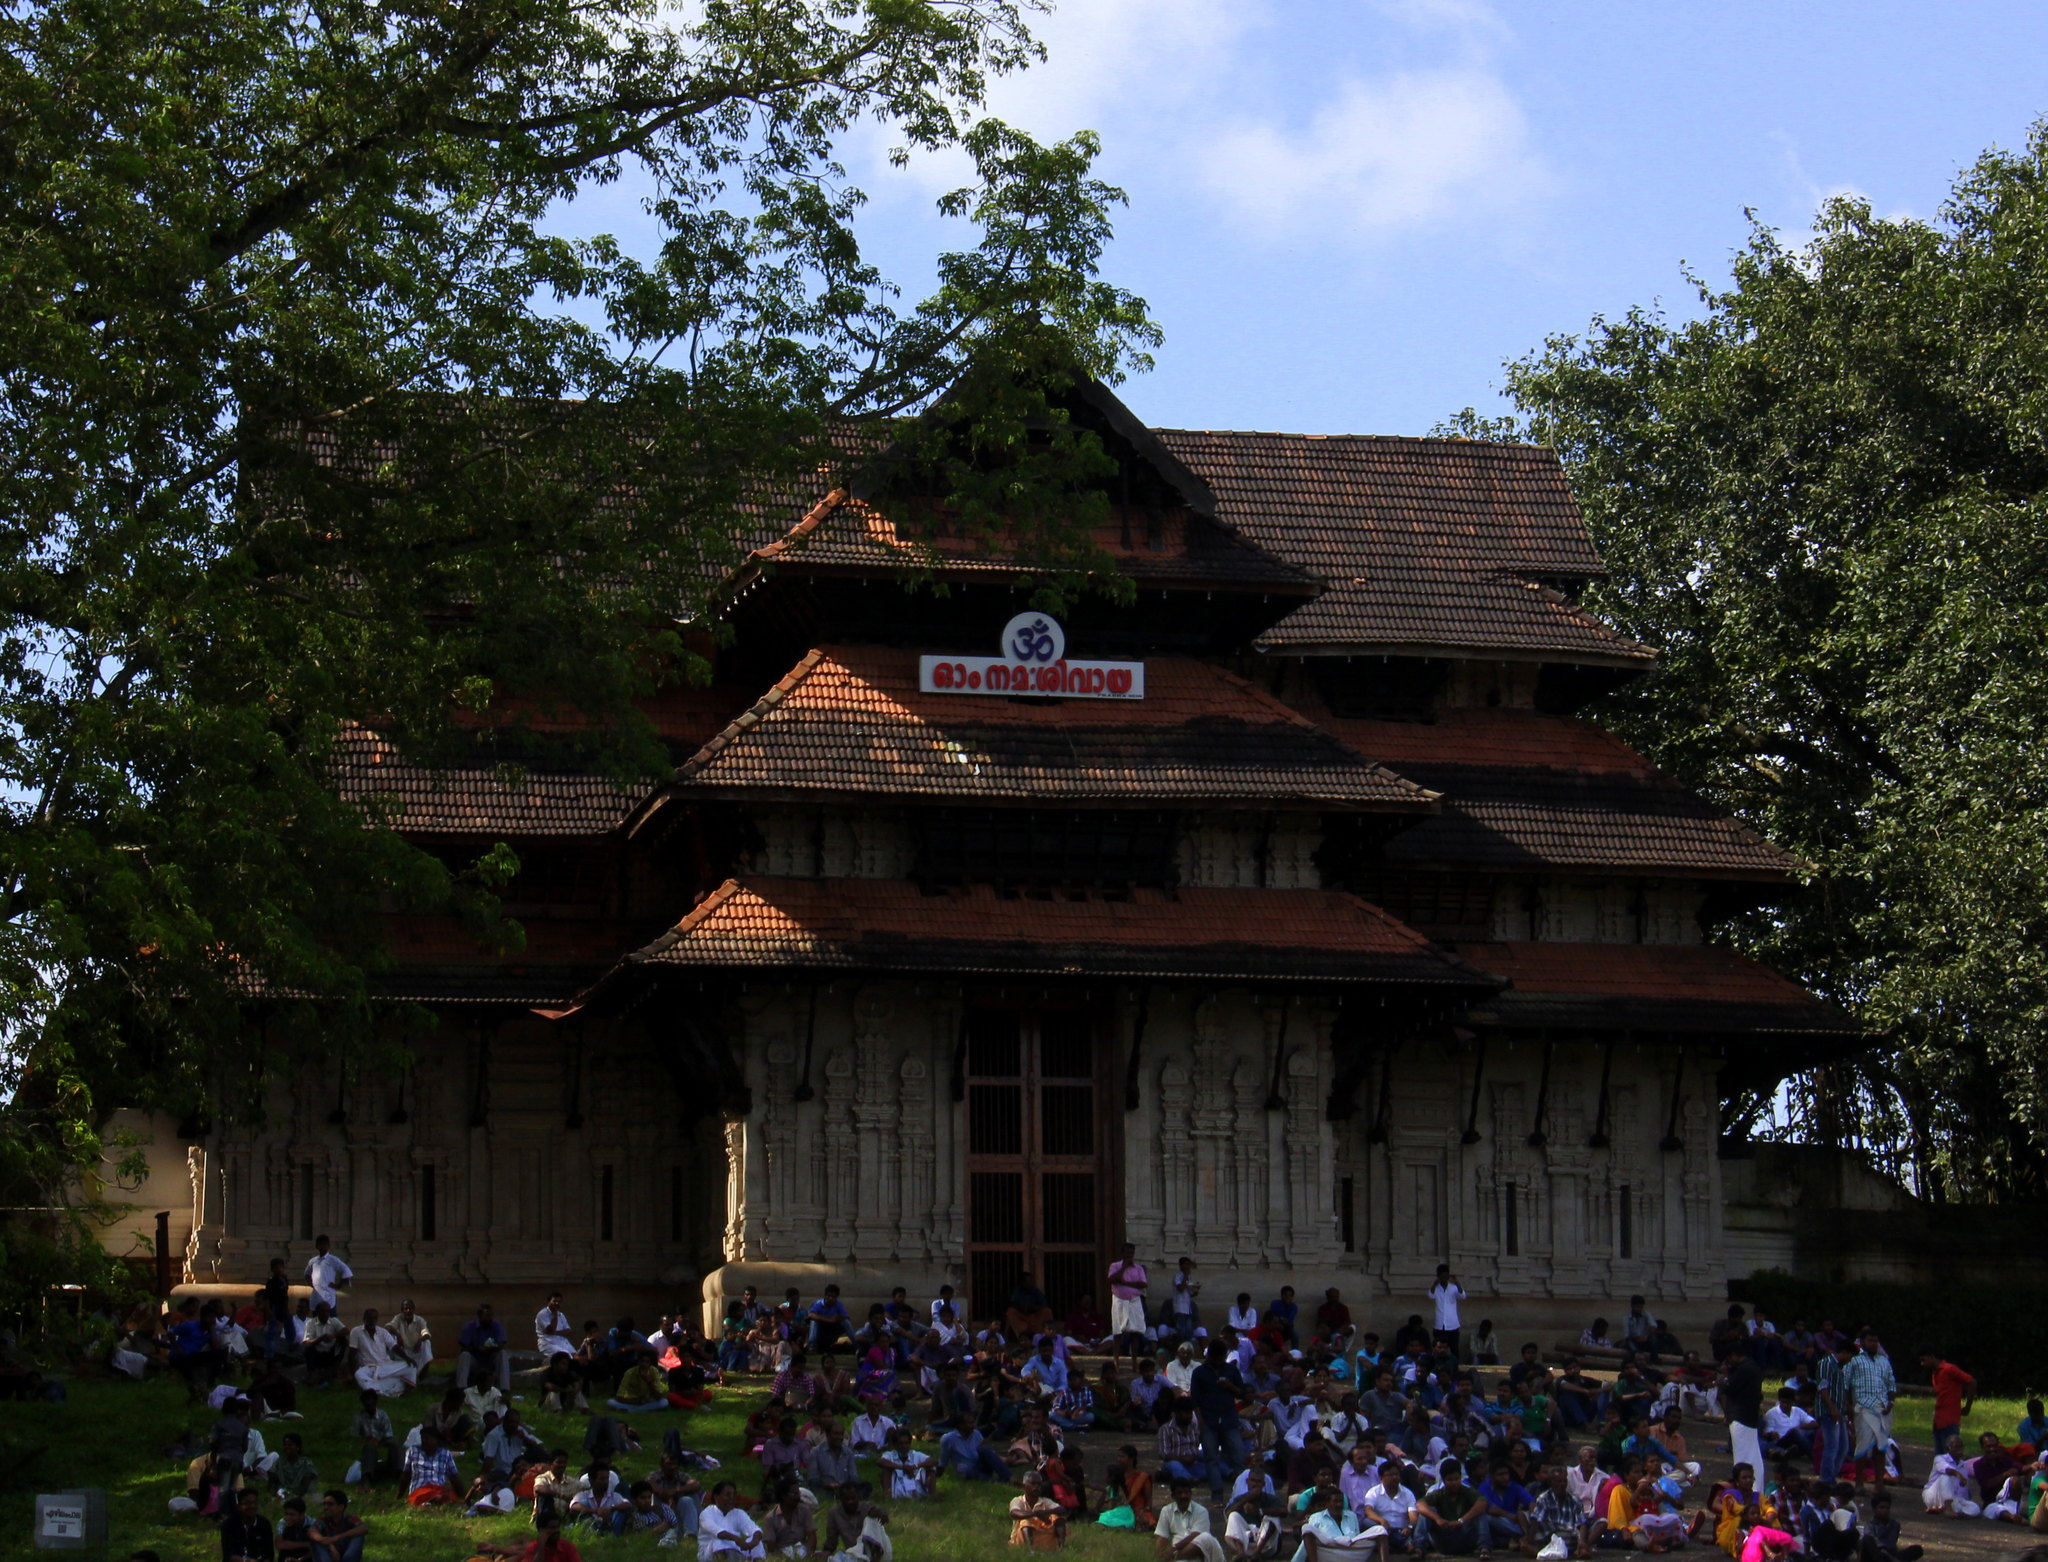 Thrissur is the place where Pulikali is danced